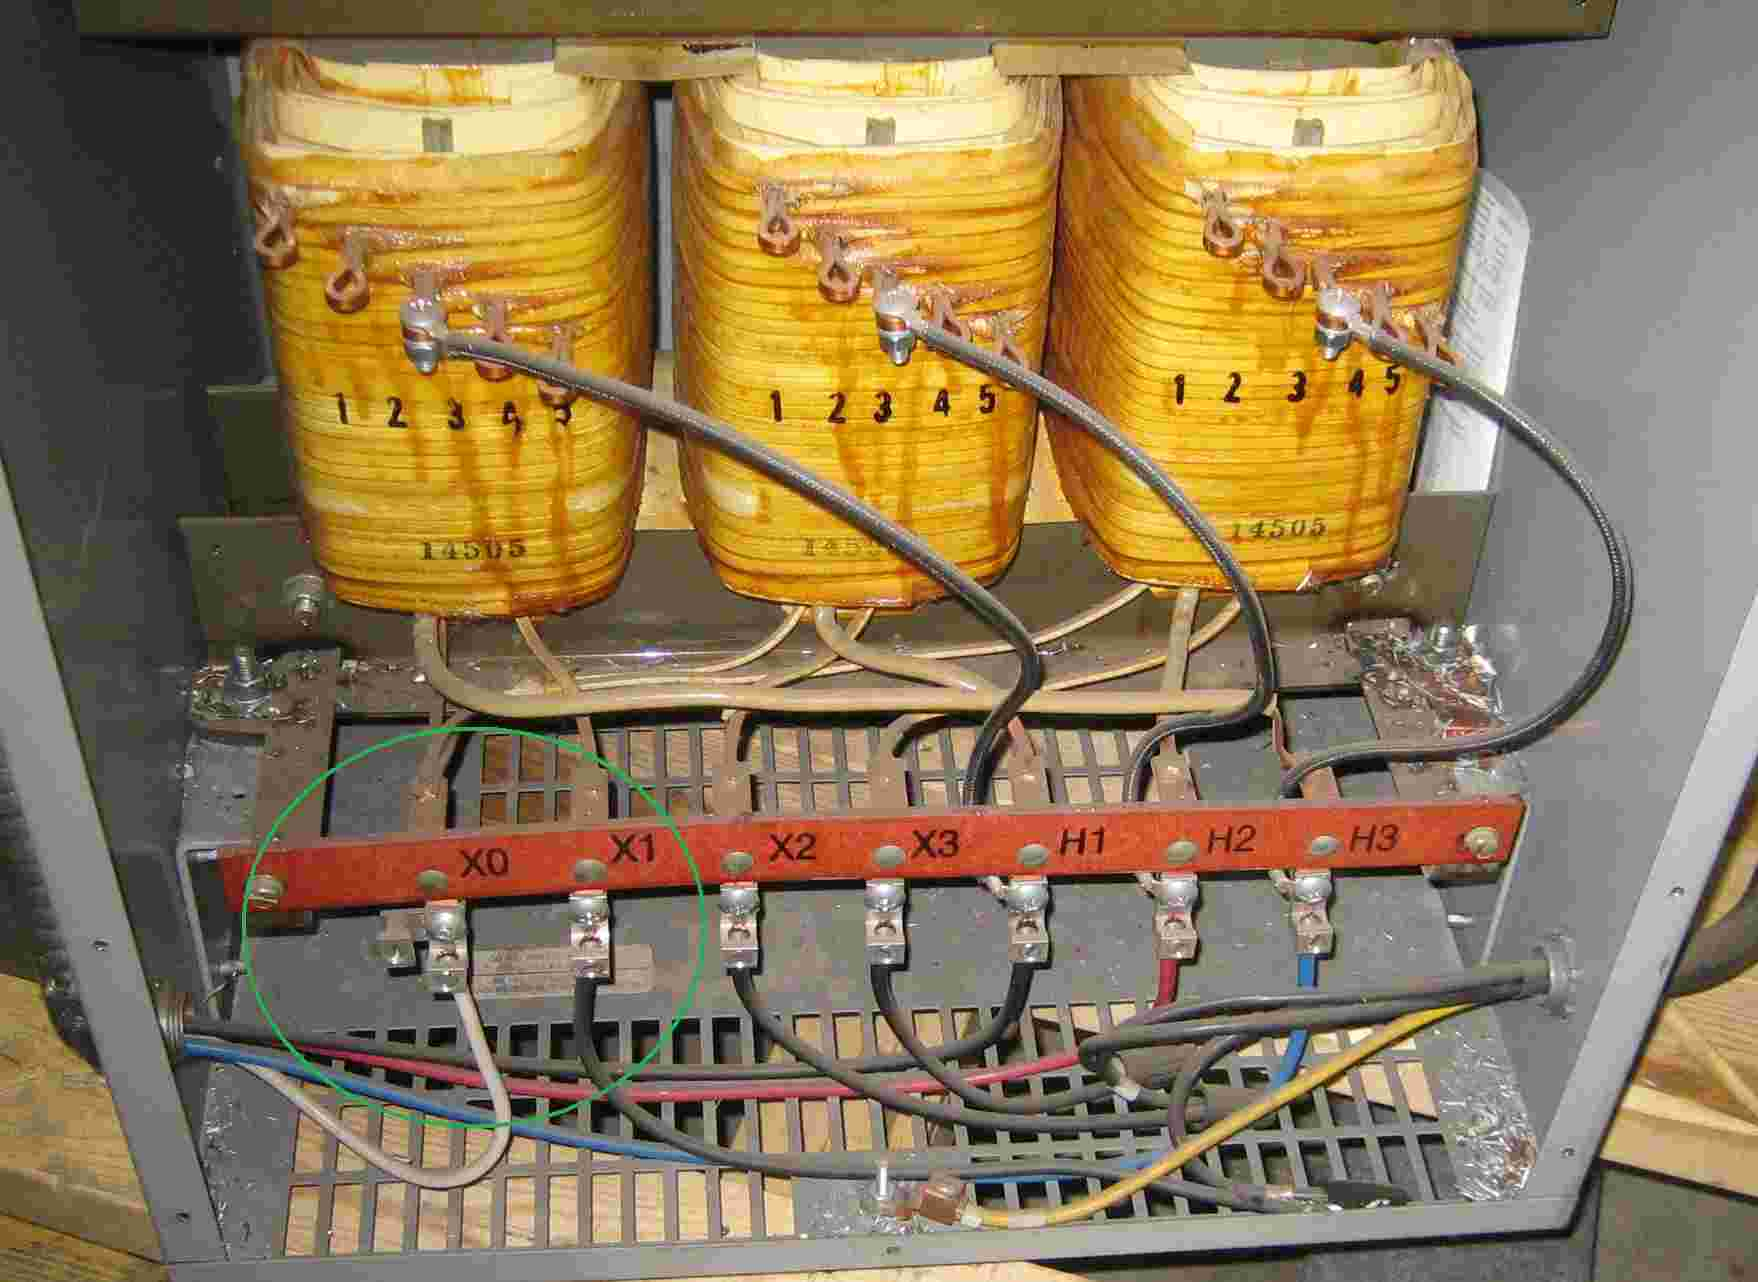 Transformer / Rotary Phase Converter Questions - 24 Volt Transformer Wiring Diagram